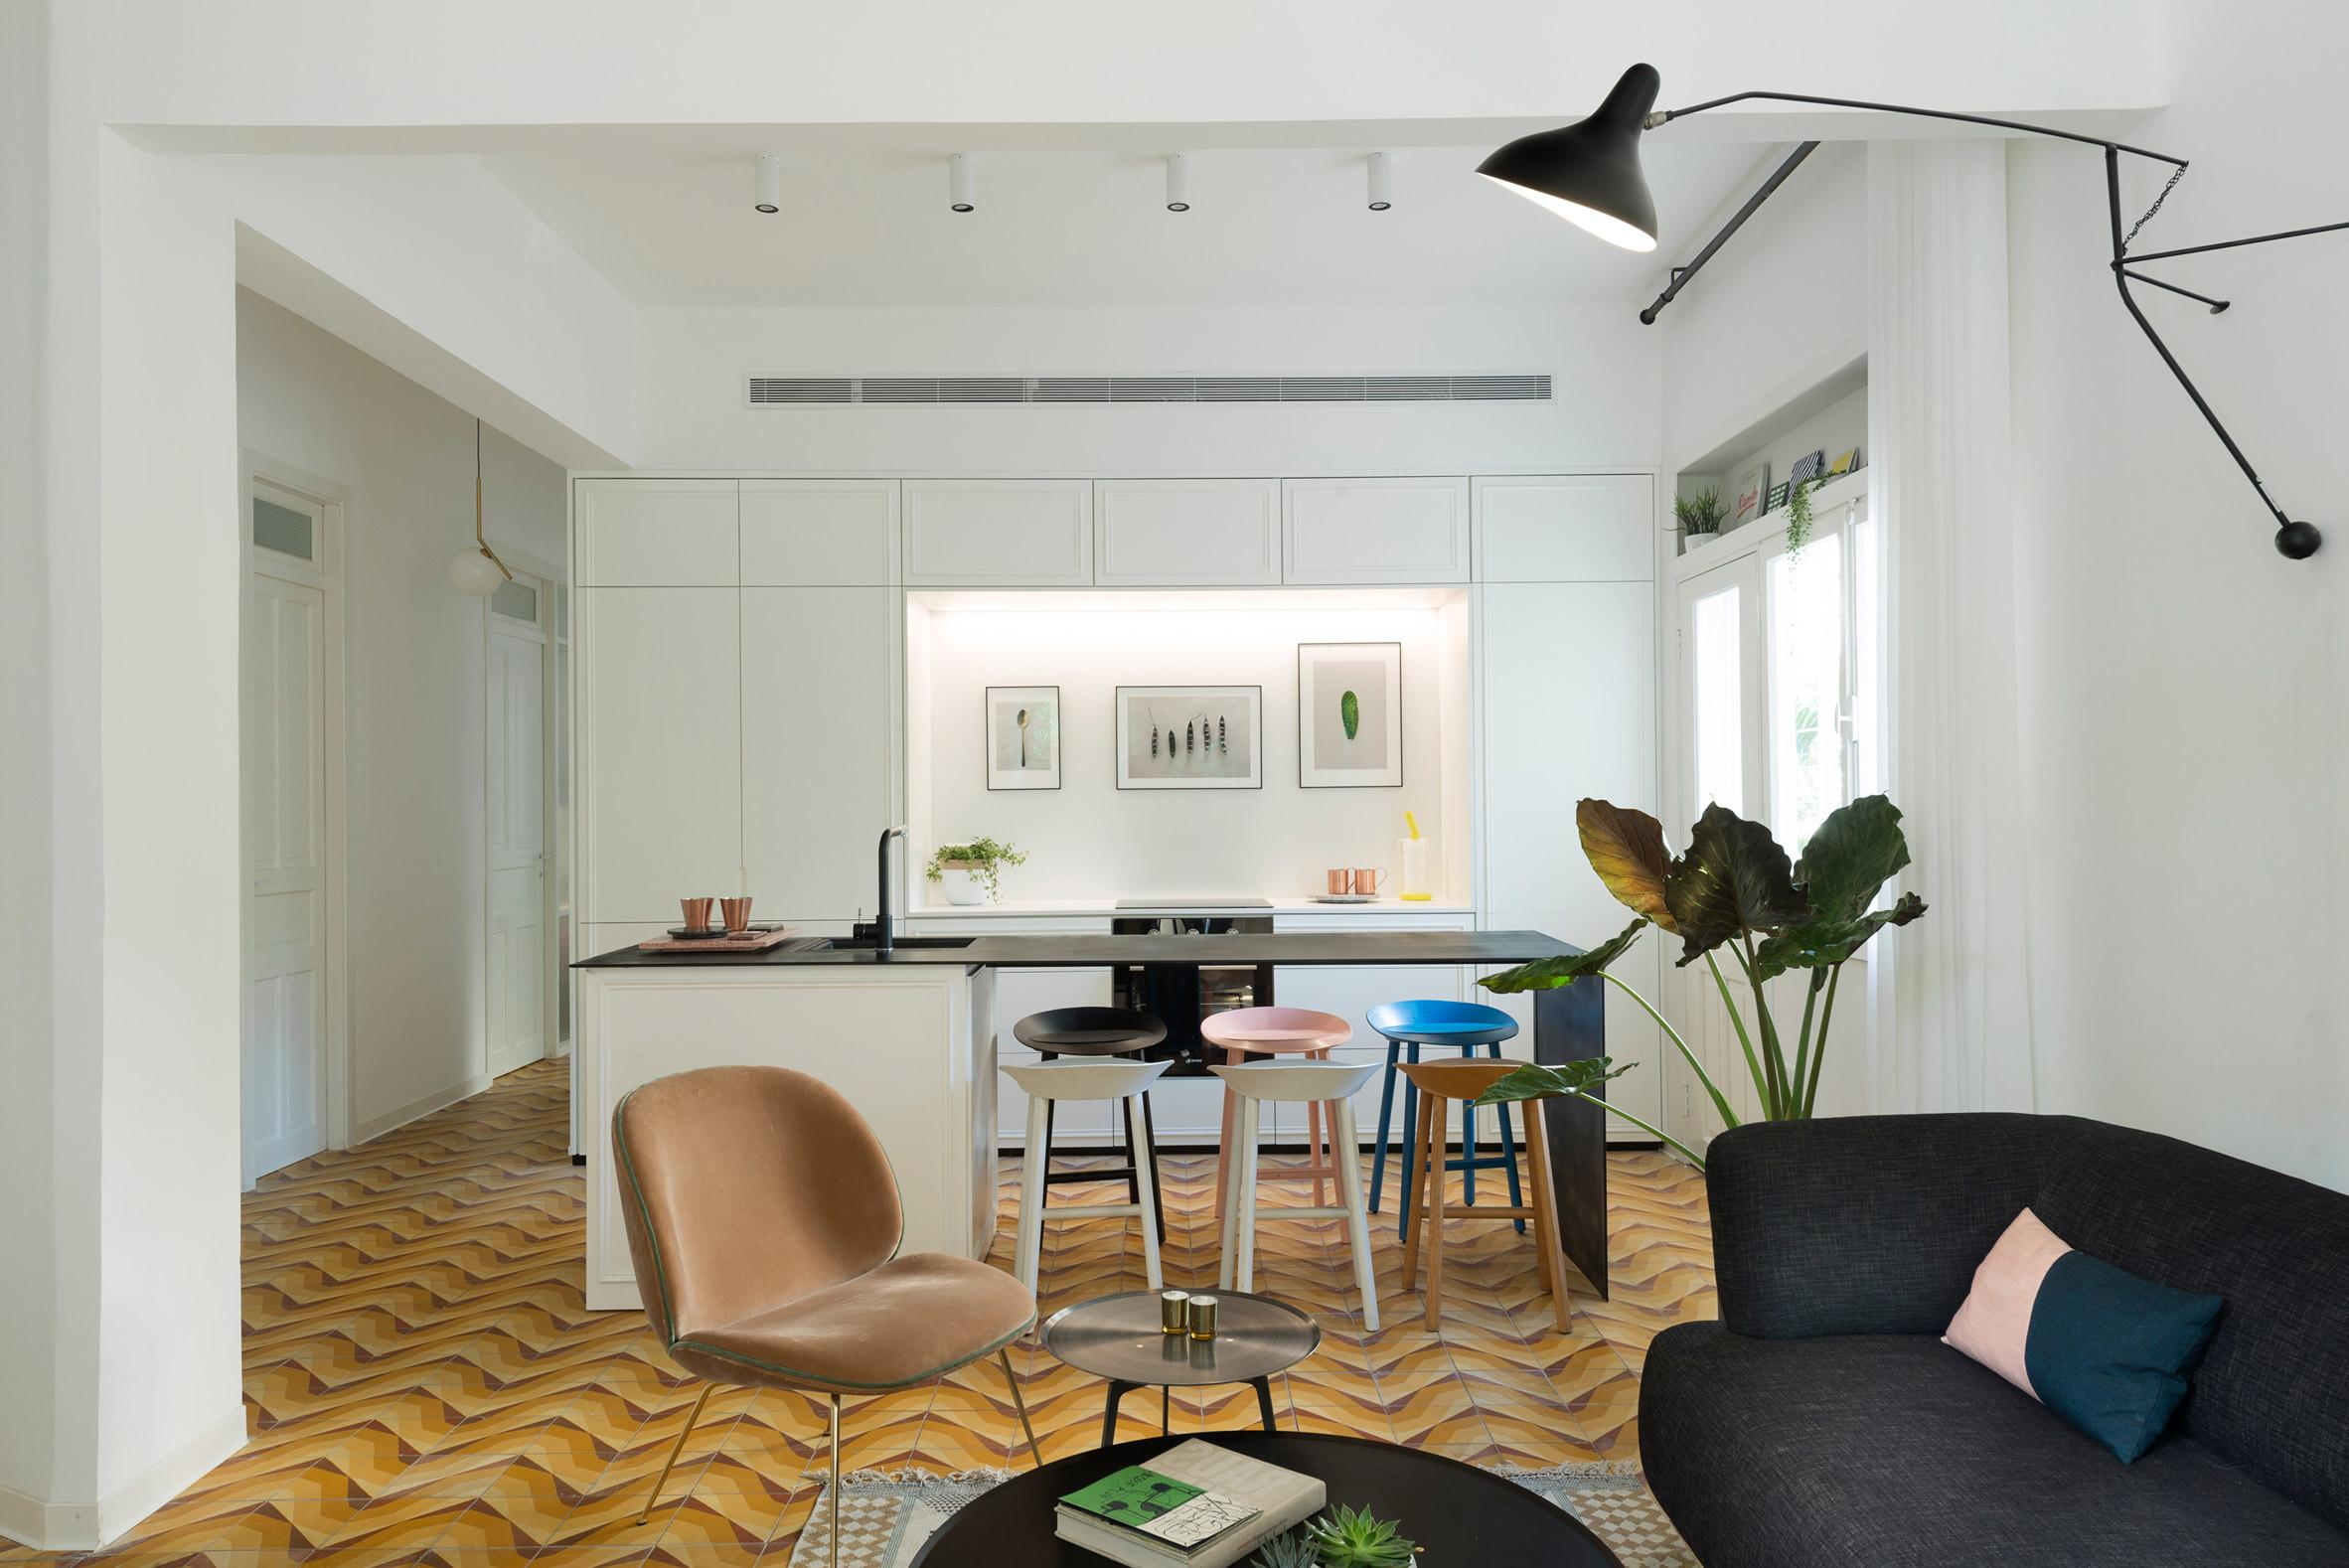 Bauhaus Apartment Tel Aviv Renovated Highlight Its